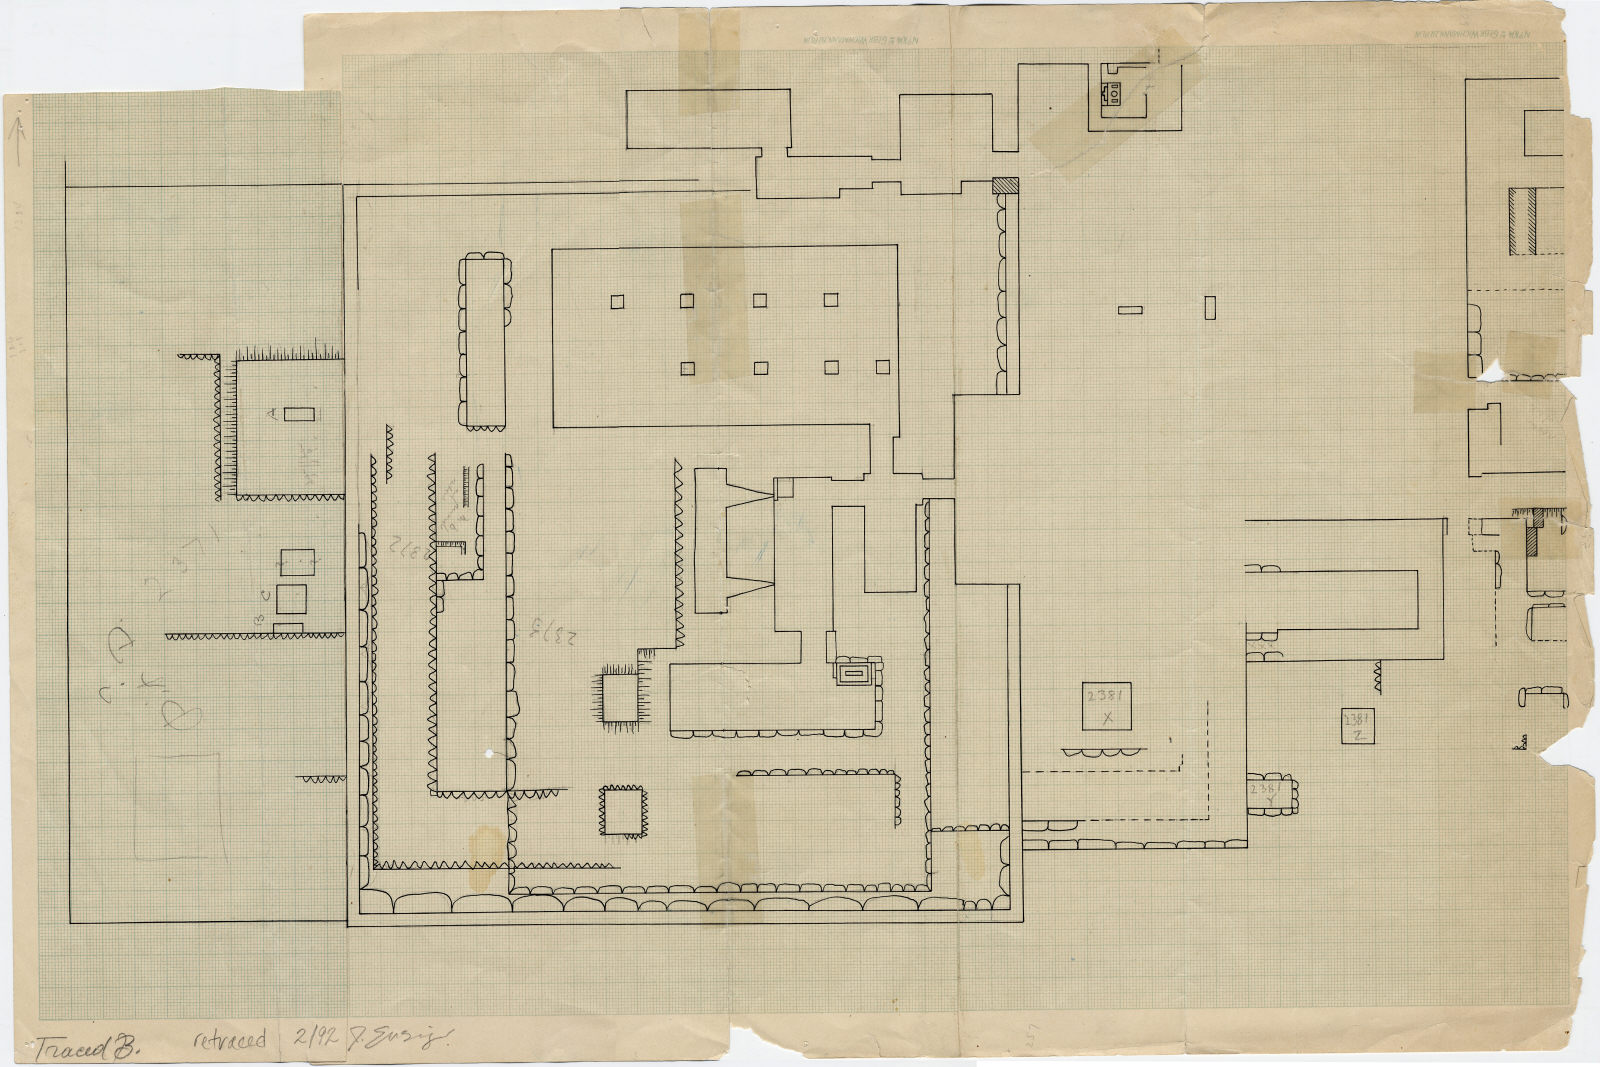 Maps and plans: Plan of G 2370, G 2371, G 2372, G 2373, G 2381, G 2383